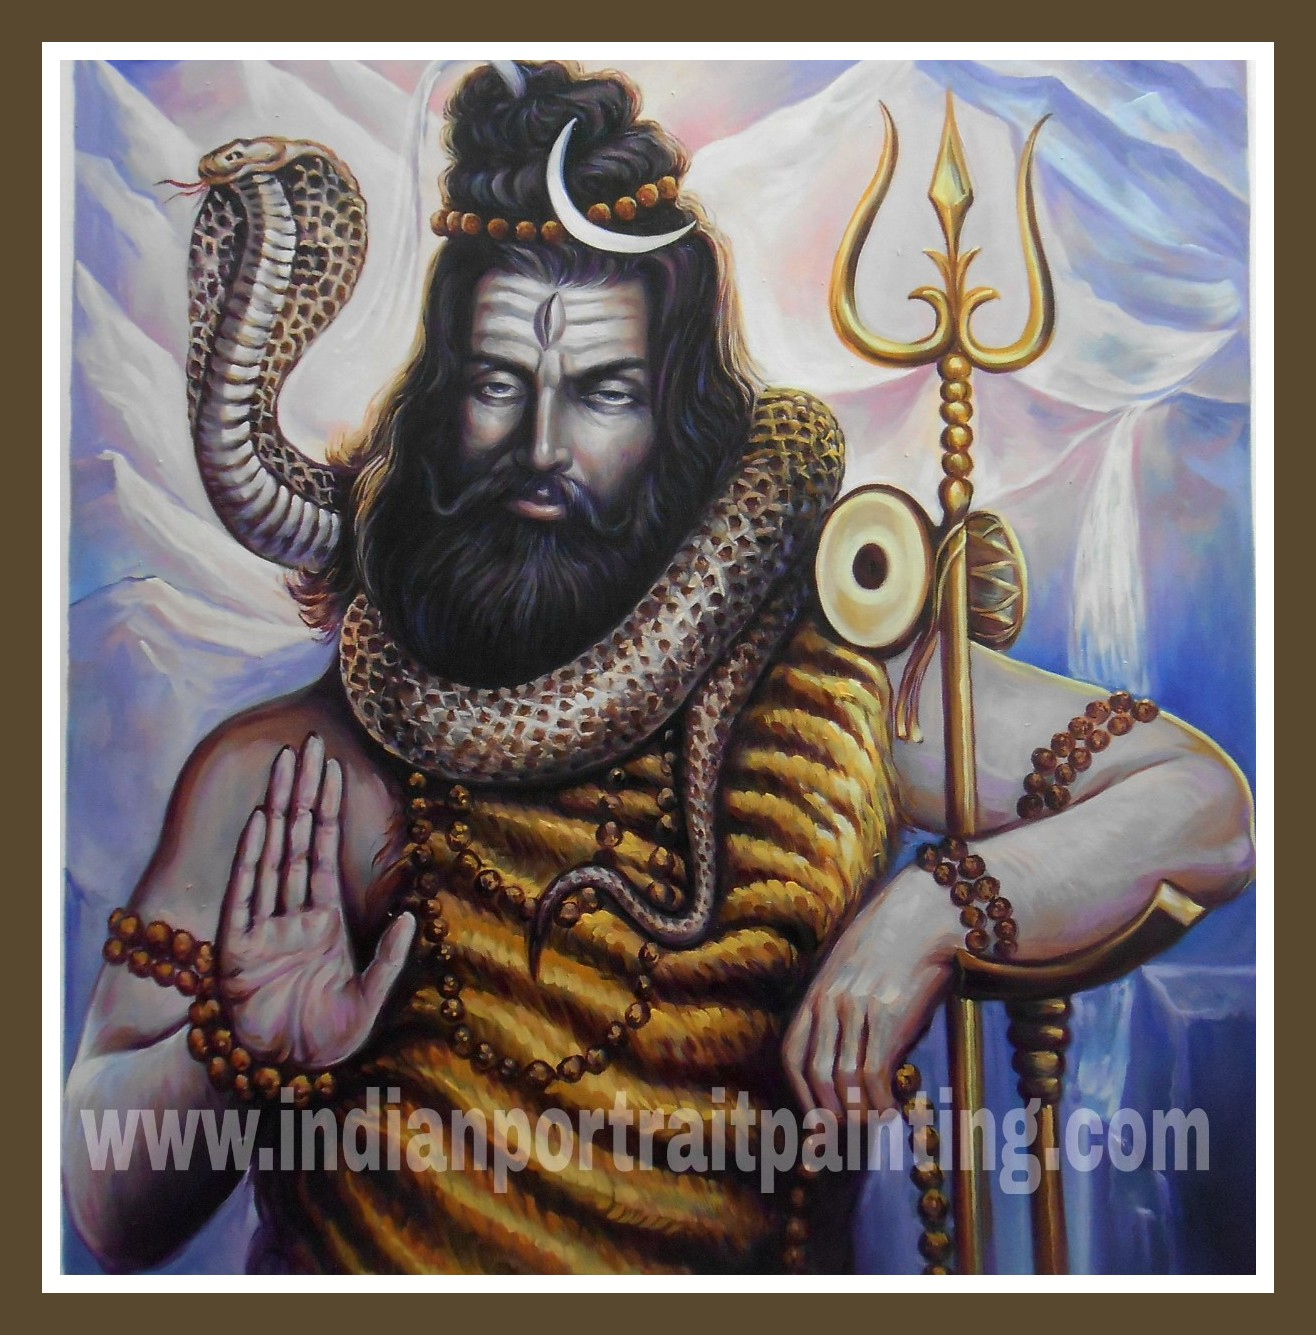 Oil painting of lord shiva on canvas